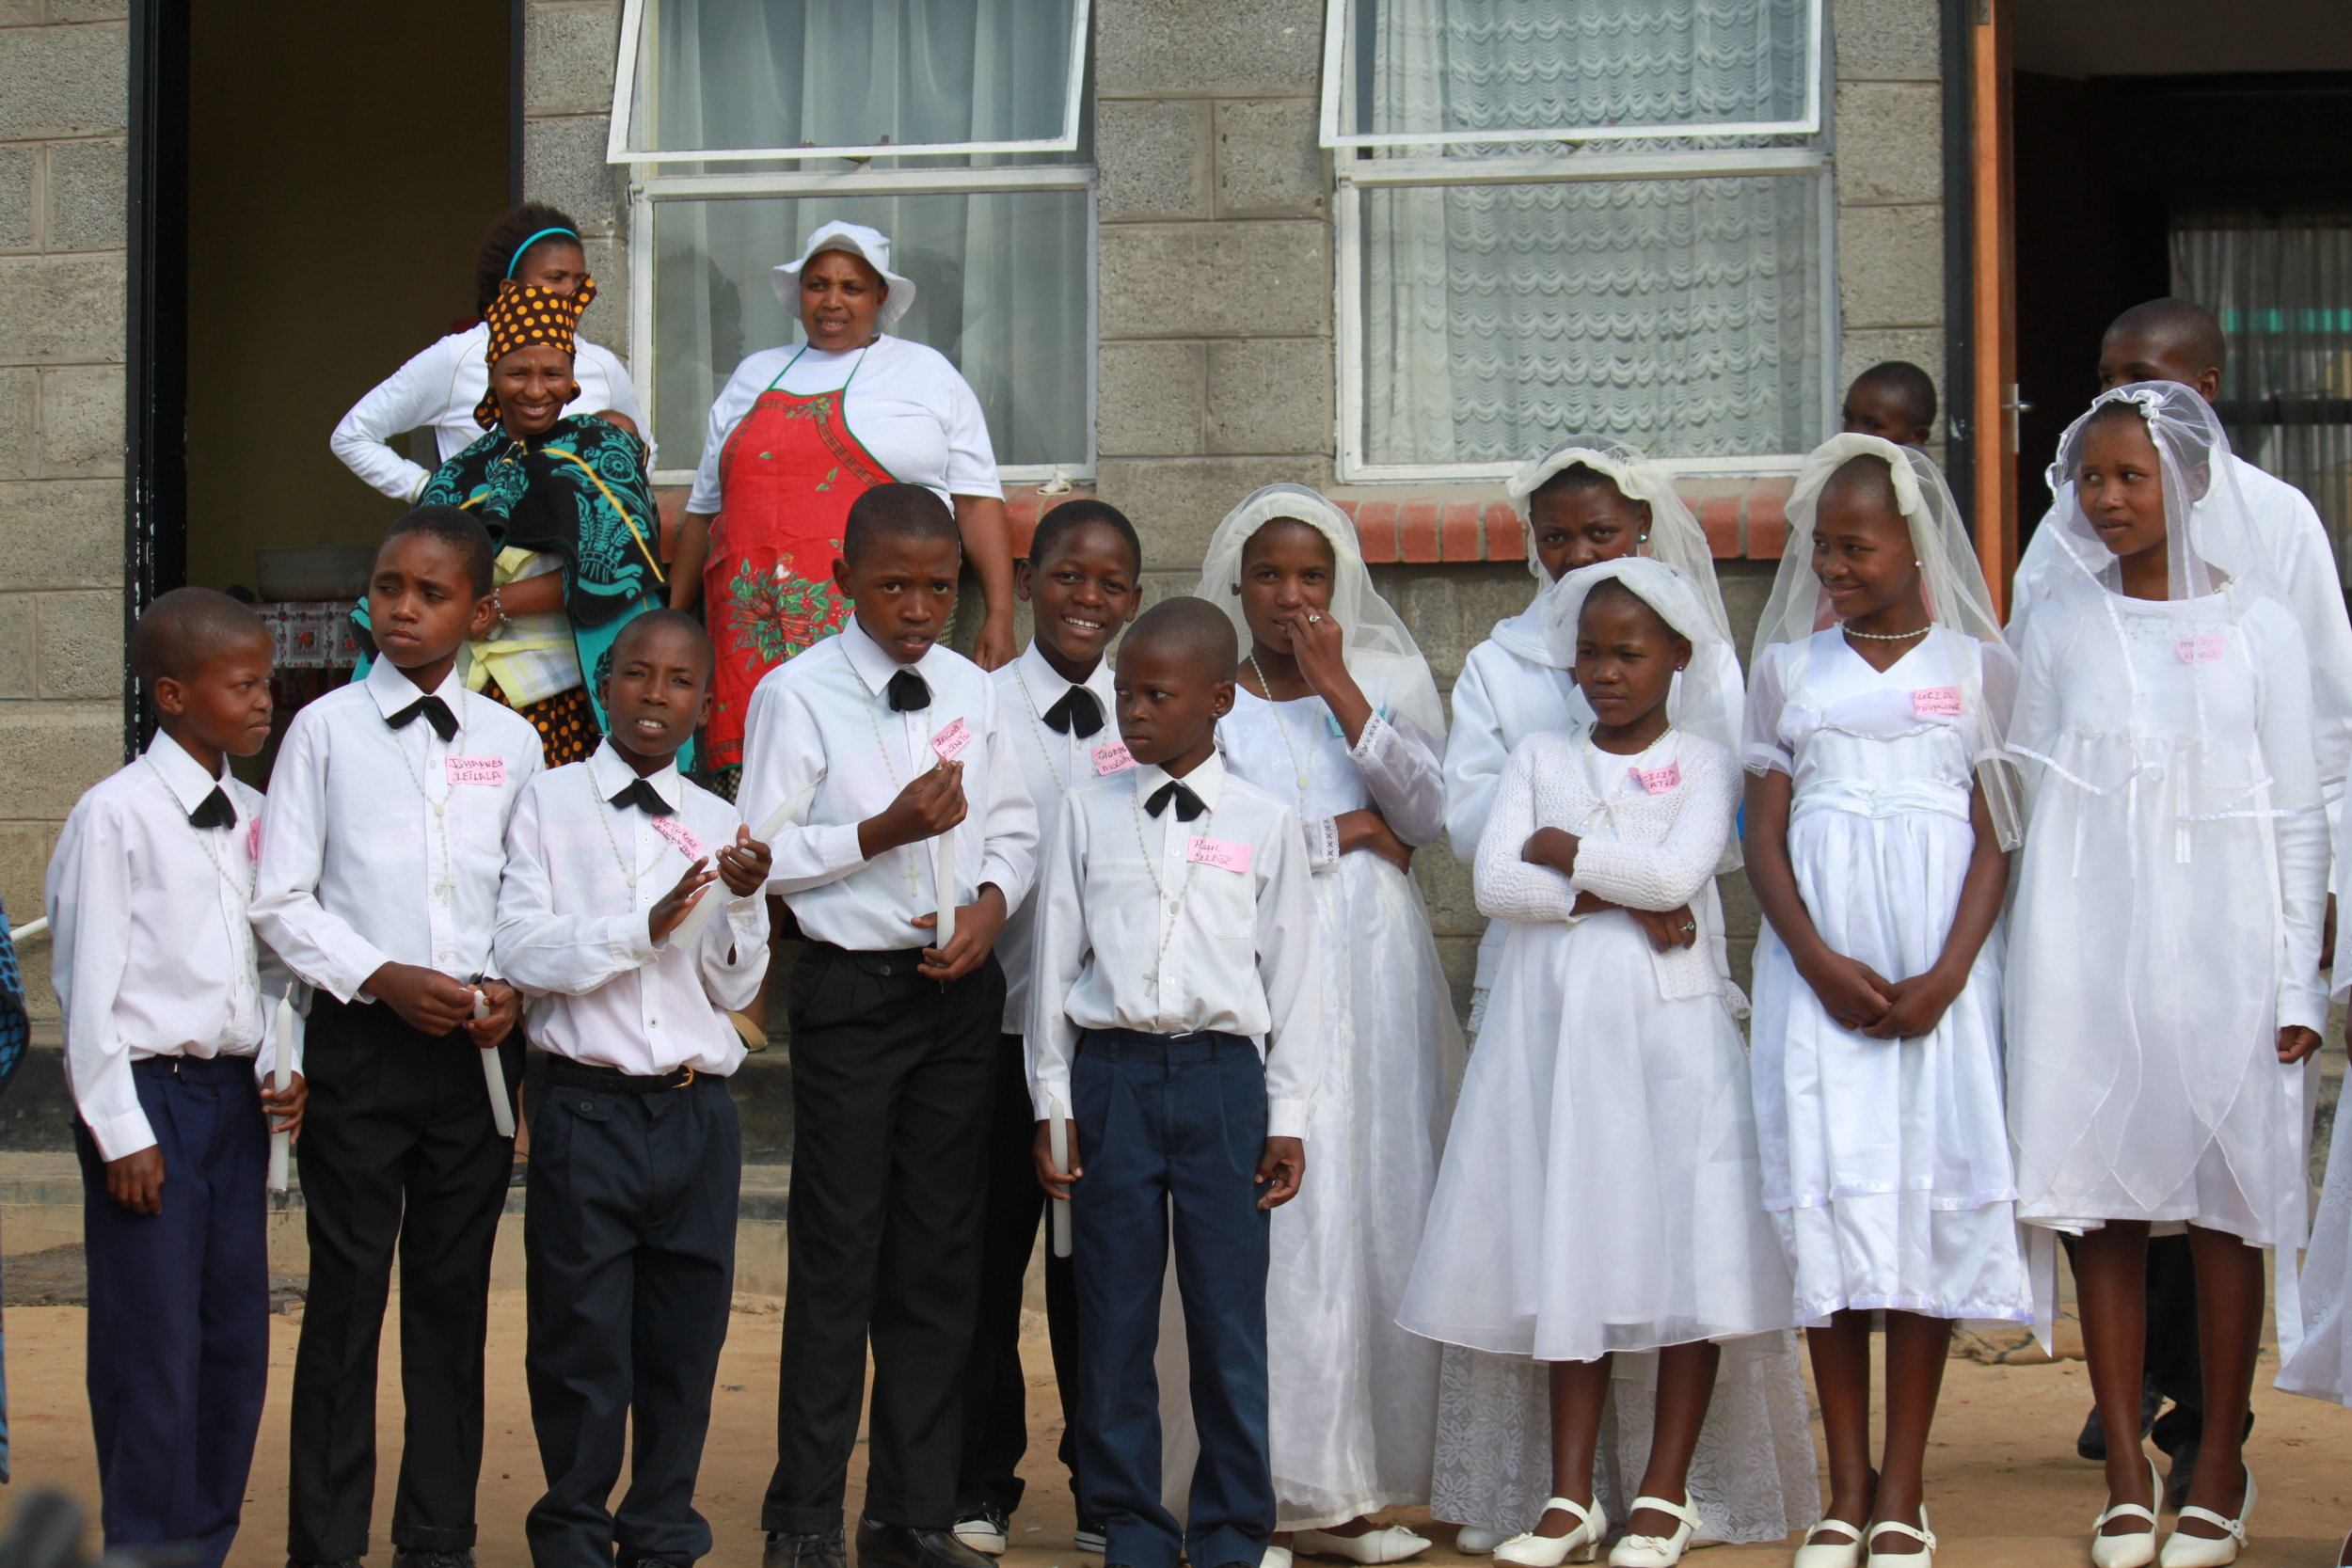 Children on their First Holy Communion day.